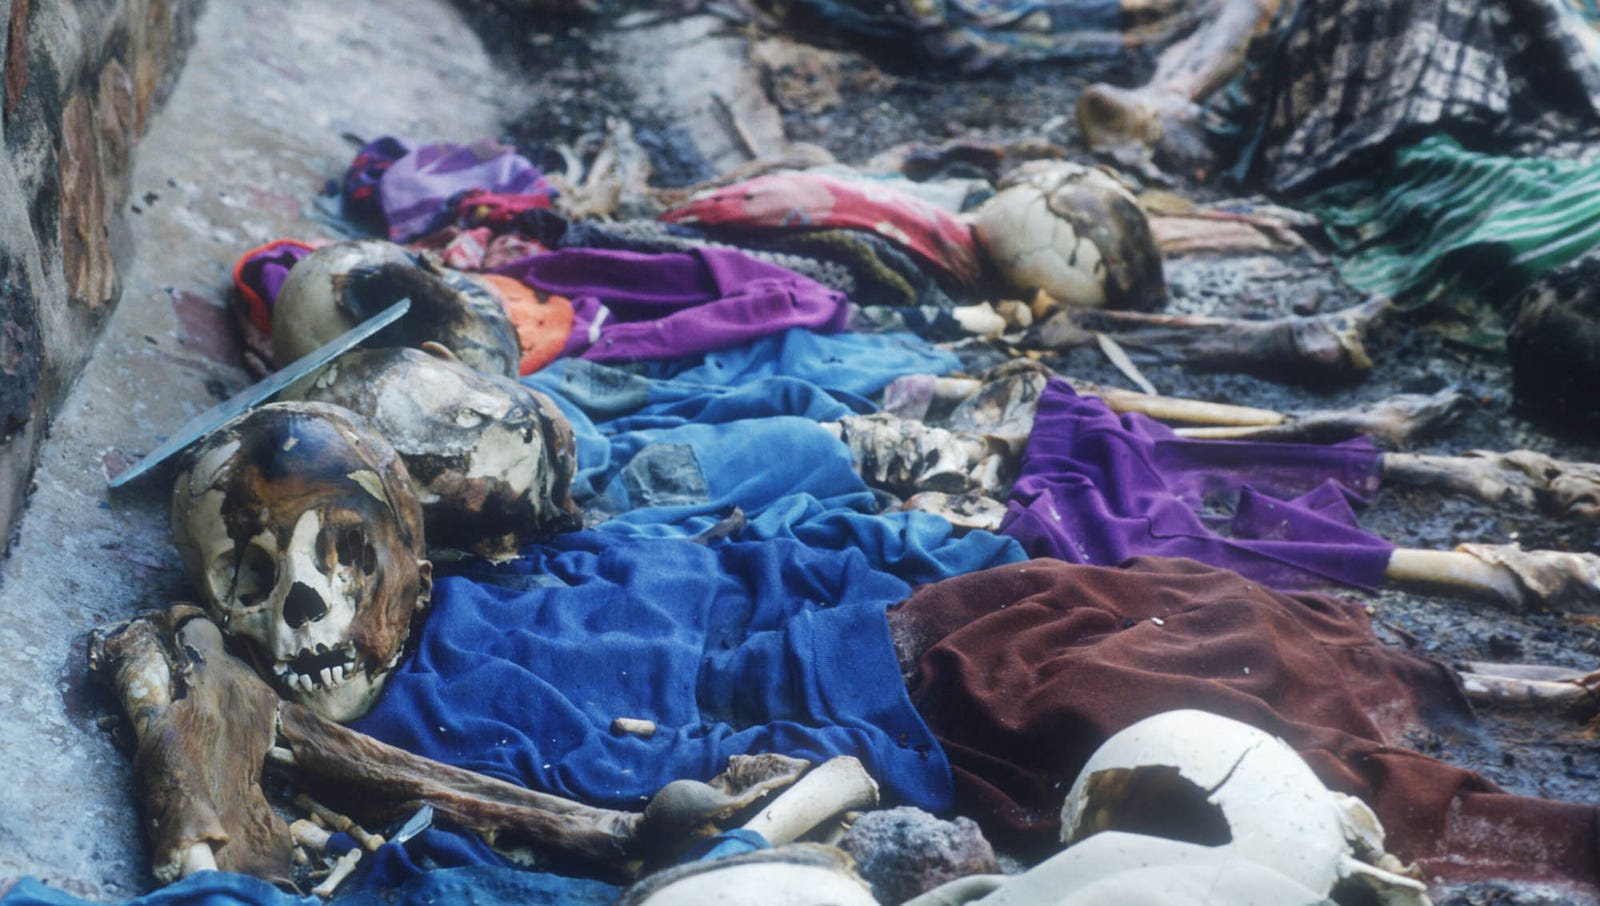 Rwandan genocide: OMG, this takes us WAY back. Way back to the '90s, that is!